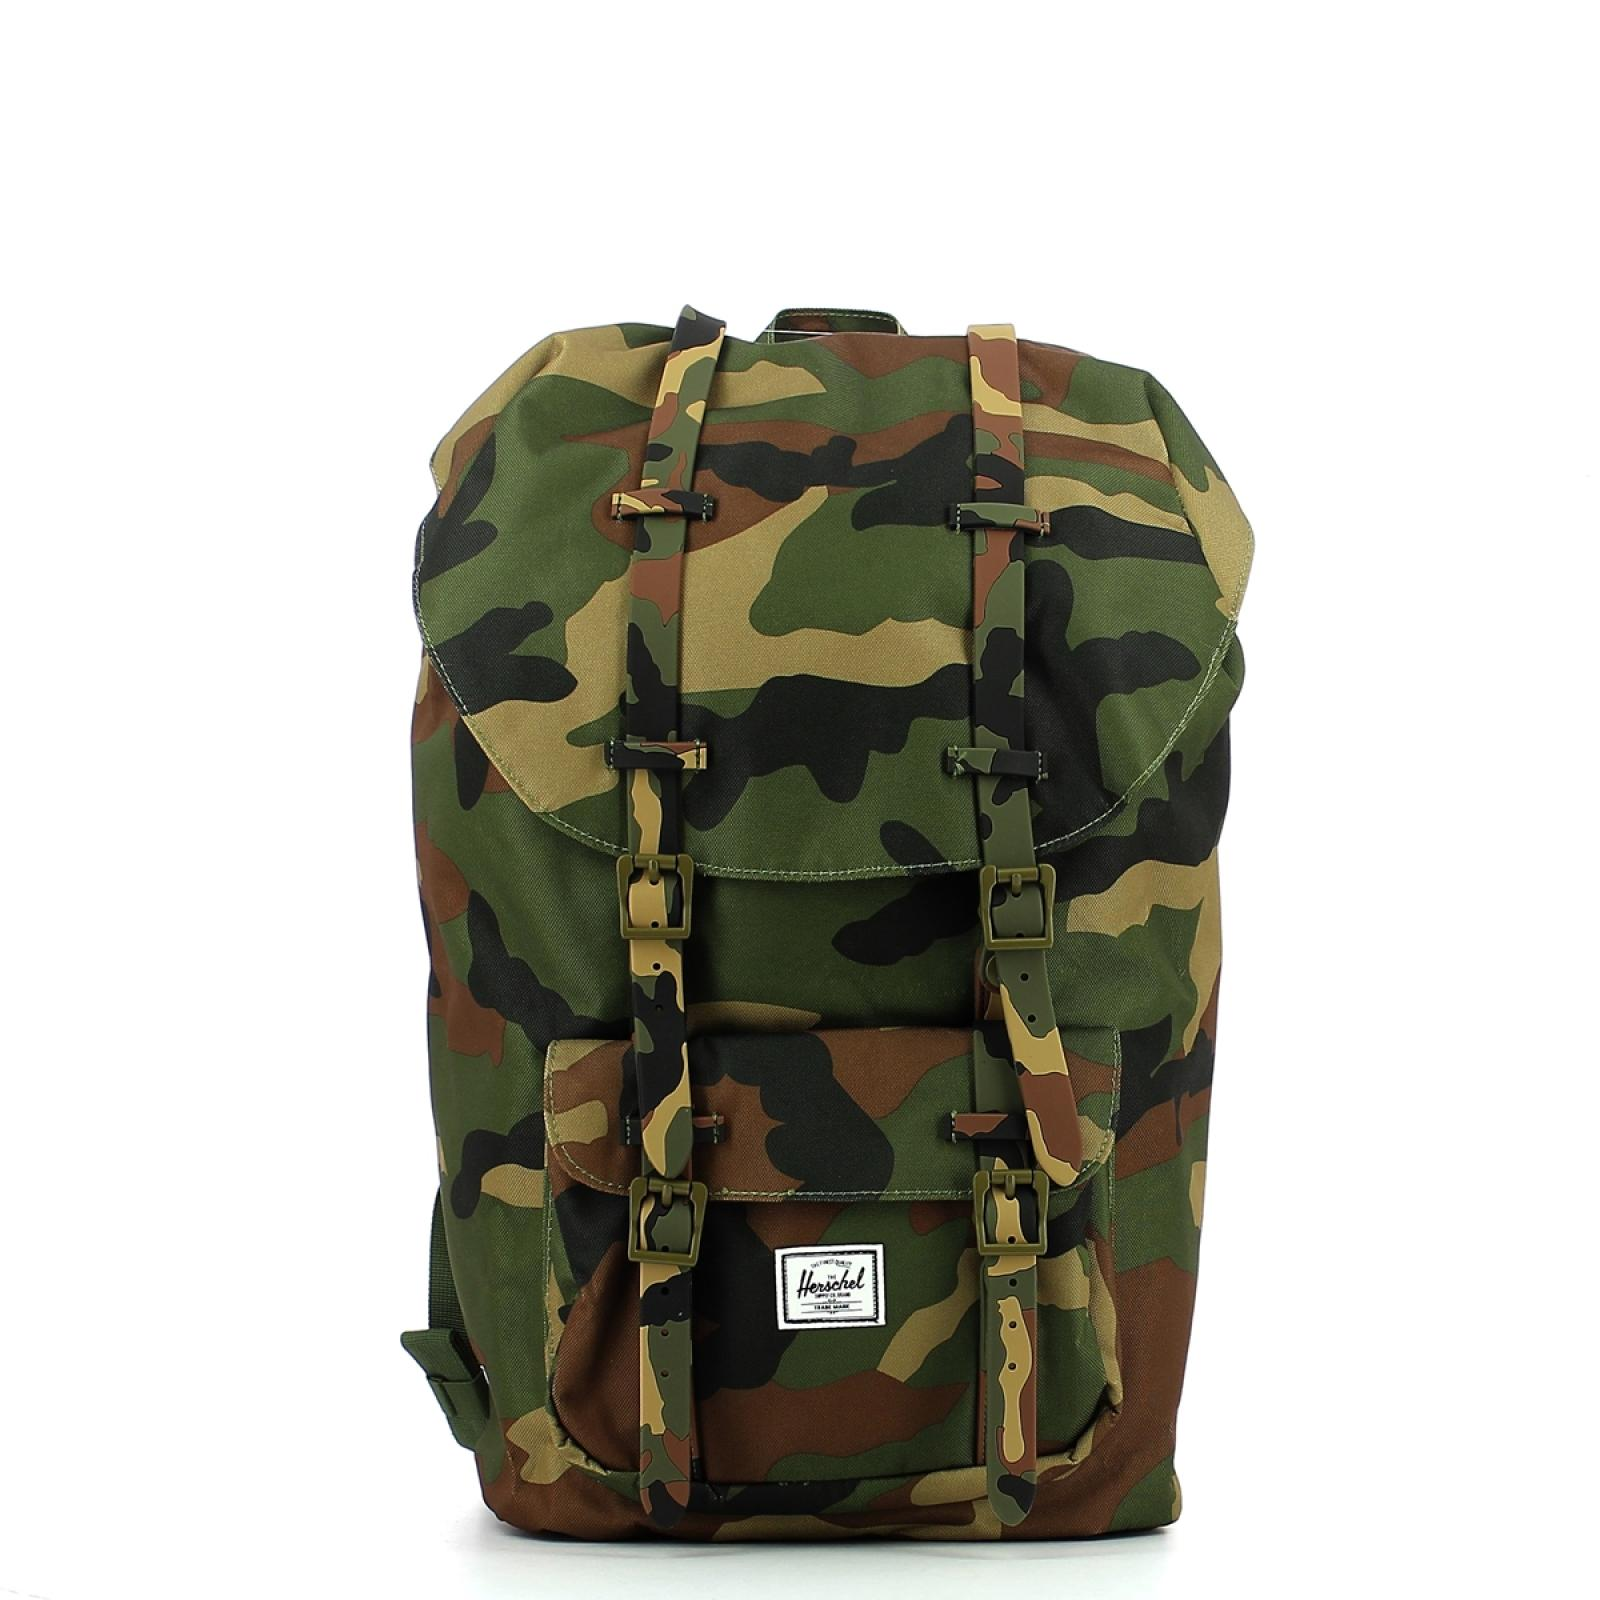 Little America Backpack 15.0